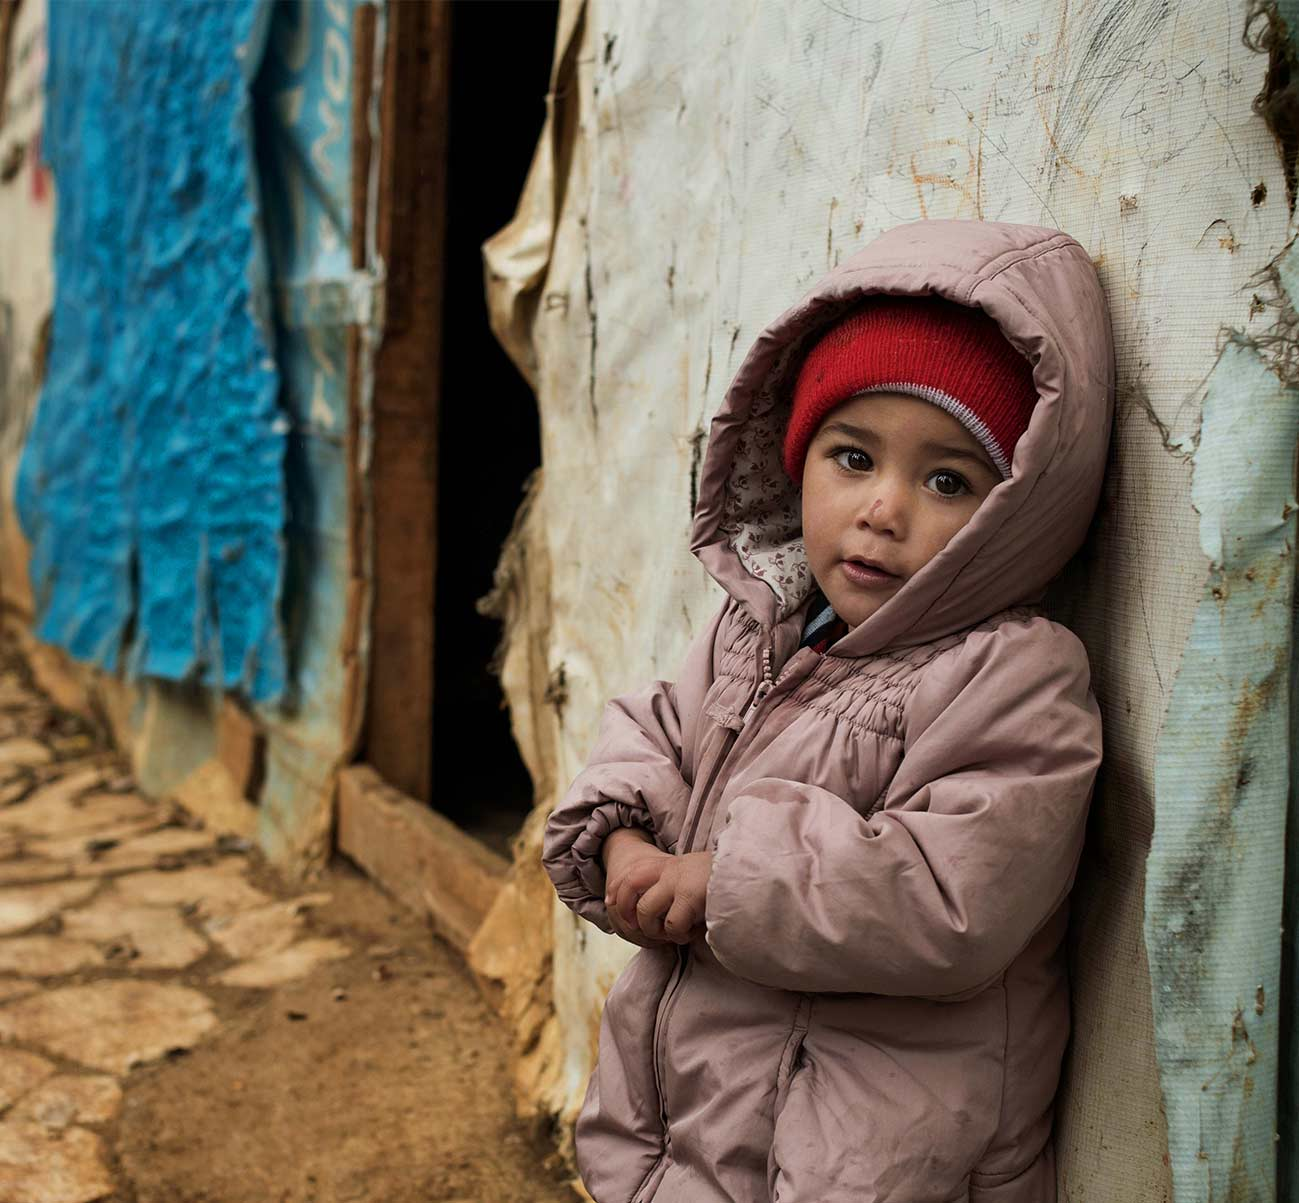 As with this young girl leaning against her ramshackle shelter UNICEF Provides winter coats and hats to thousands of children in Syrian Refugee camps - one of the countless ways UNICEF shelter and protects children around the world.